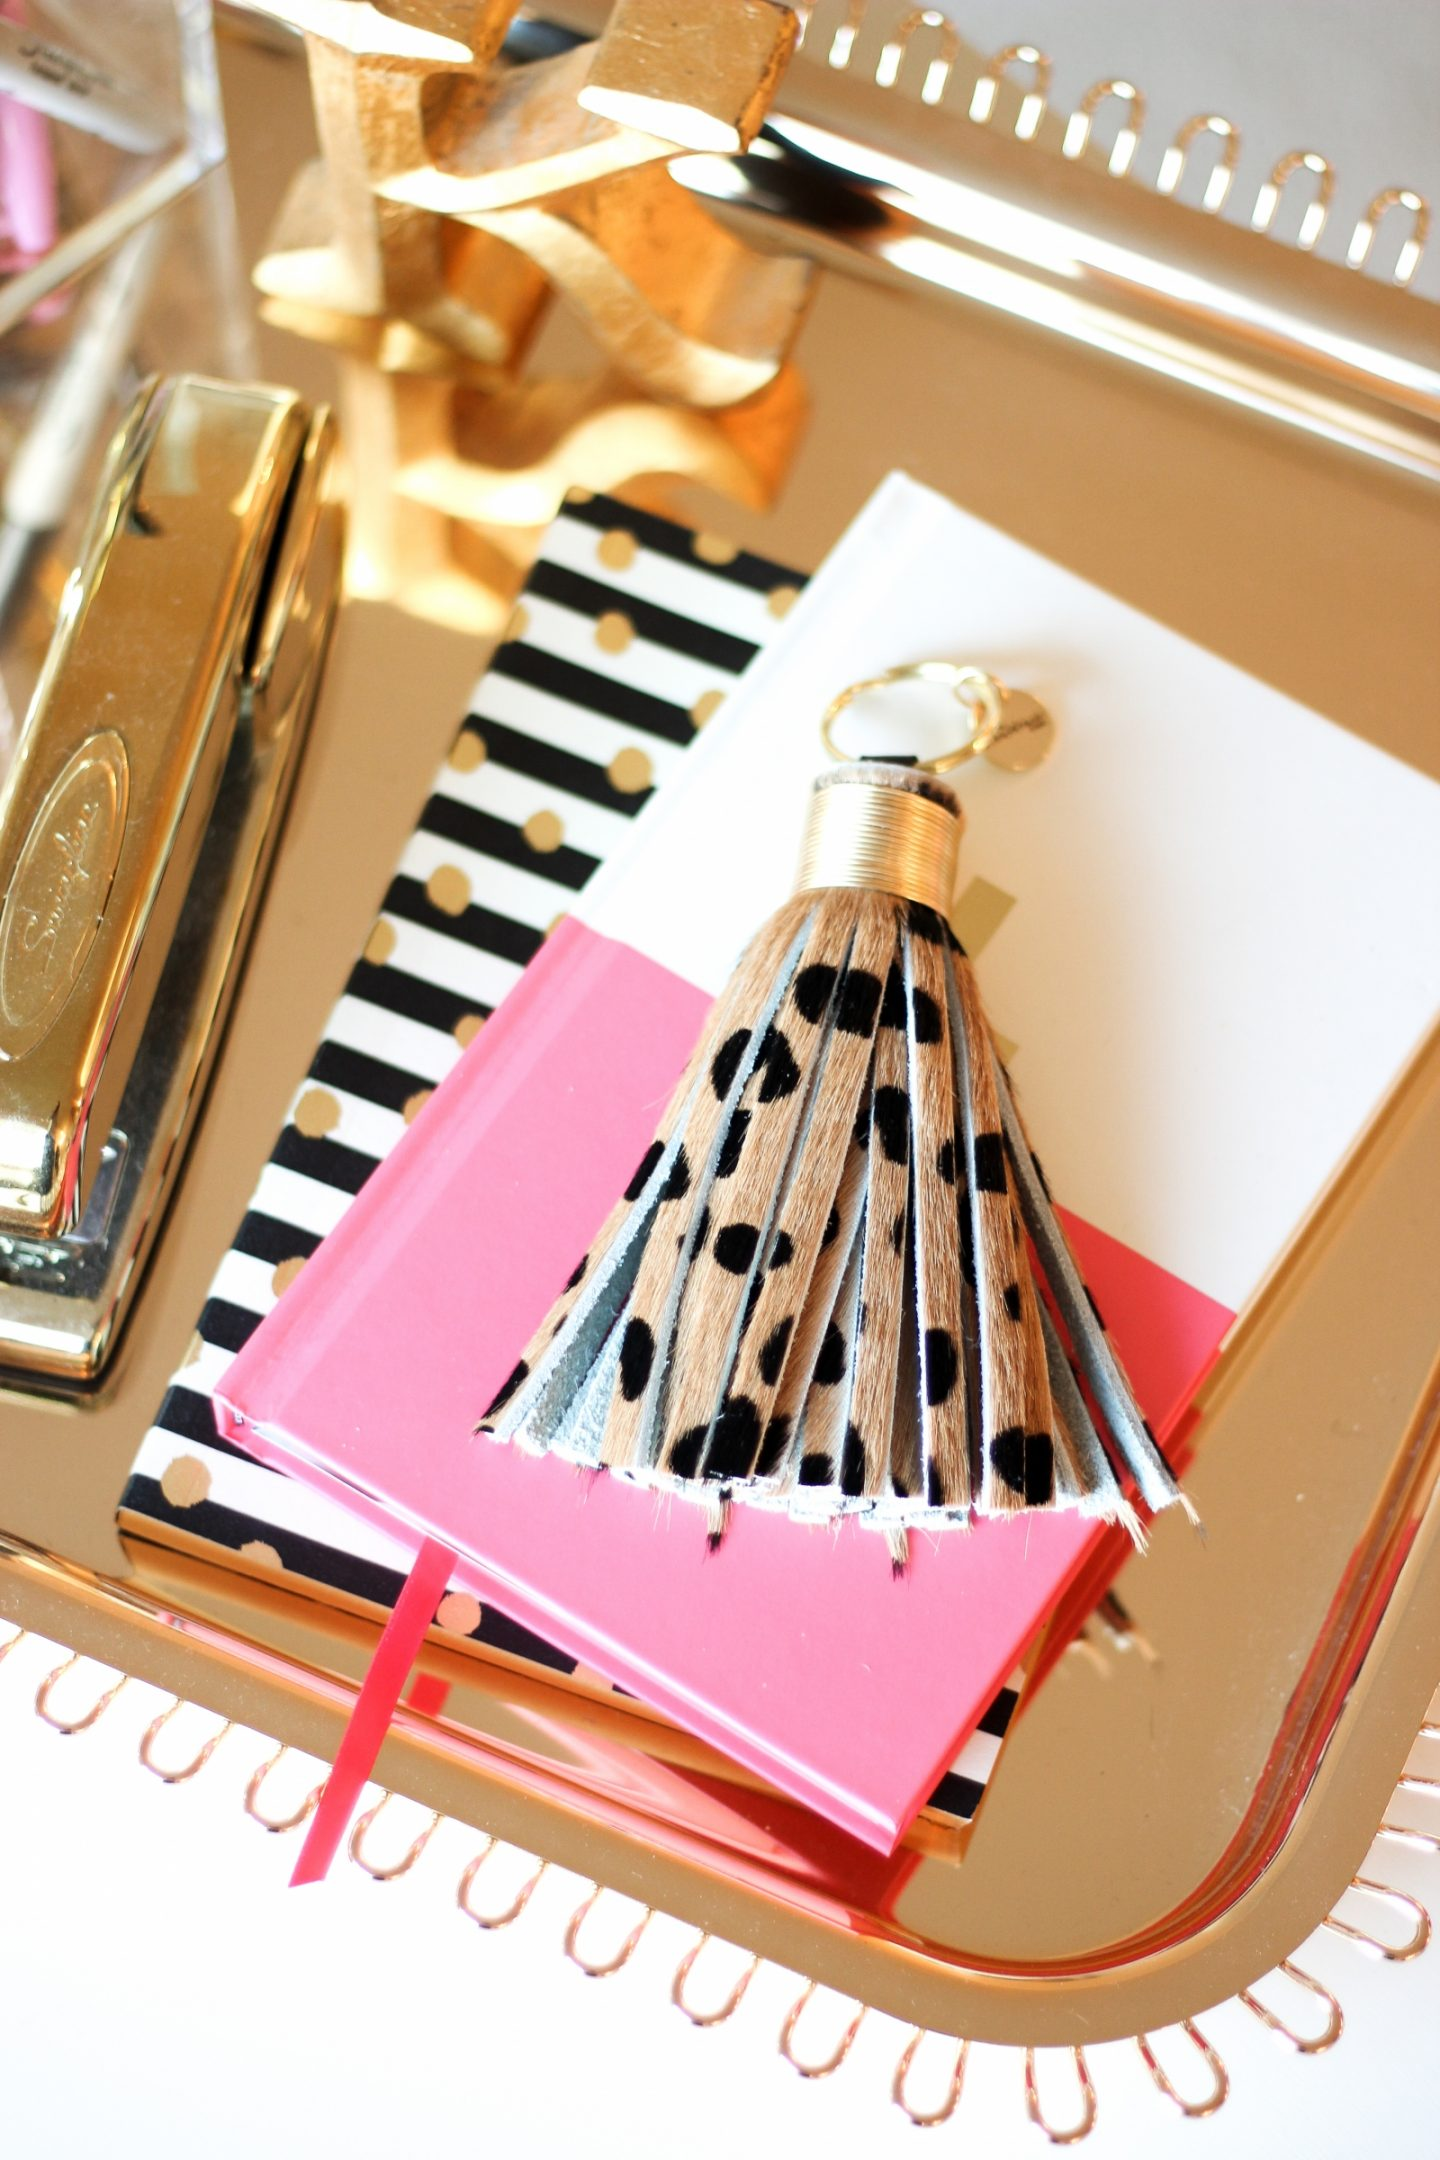 The Best Gift [on SALE!] For Every Price Point $15 - $220 by Washington DC style blogger Styled Blonde